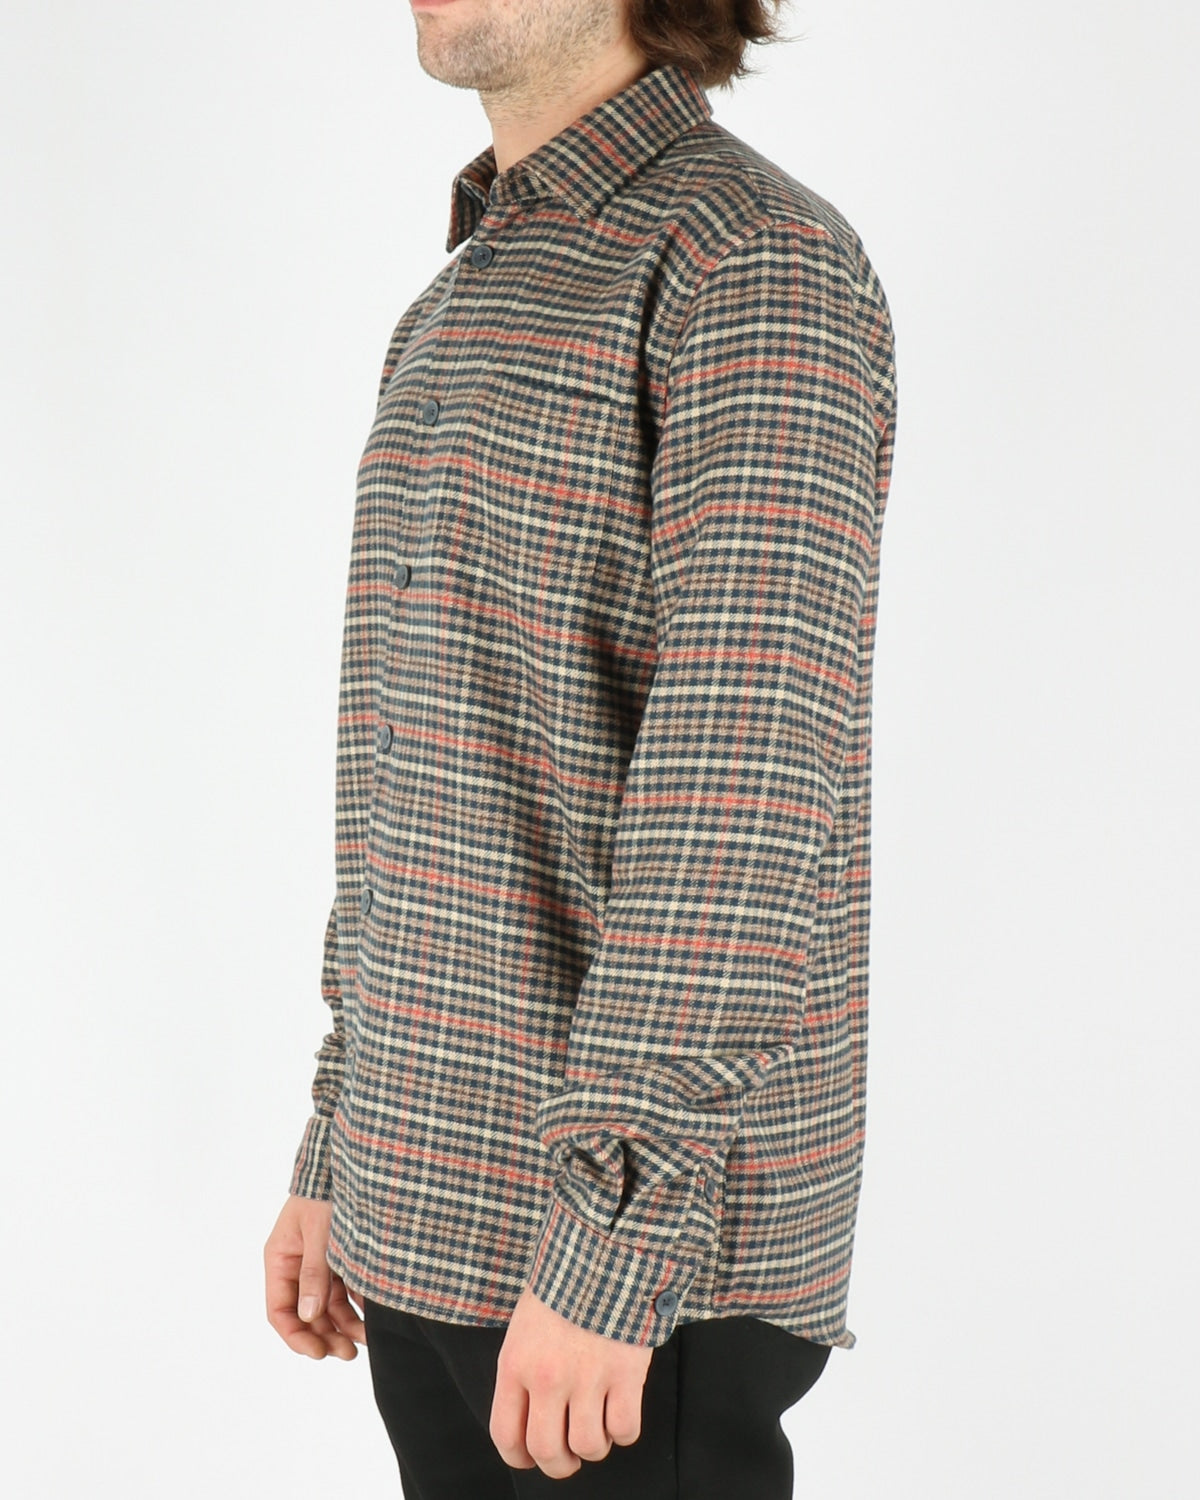 libertine libertine_miracle shirt_twill red check_2_5